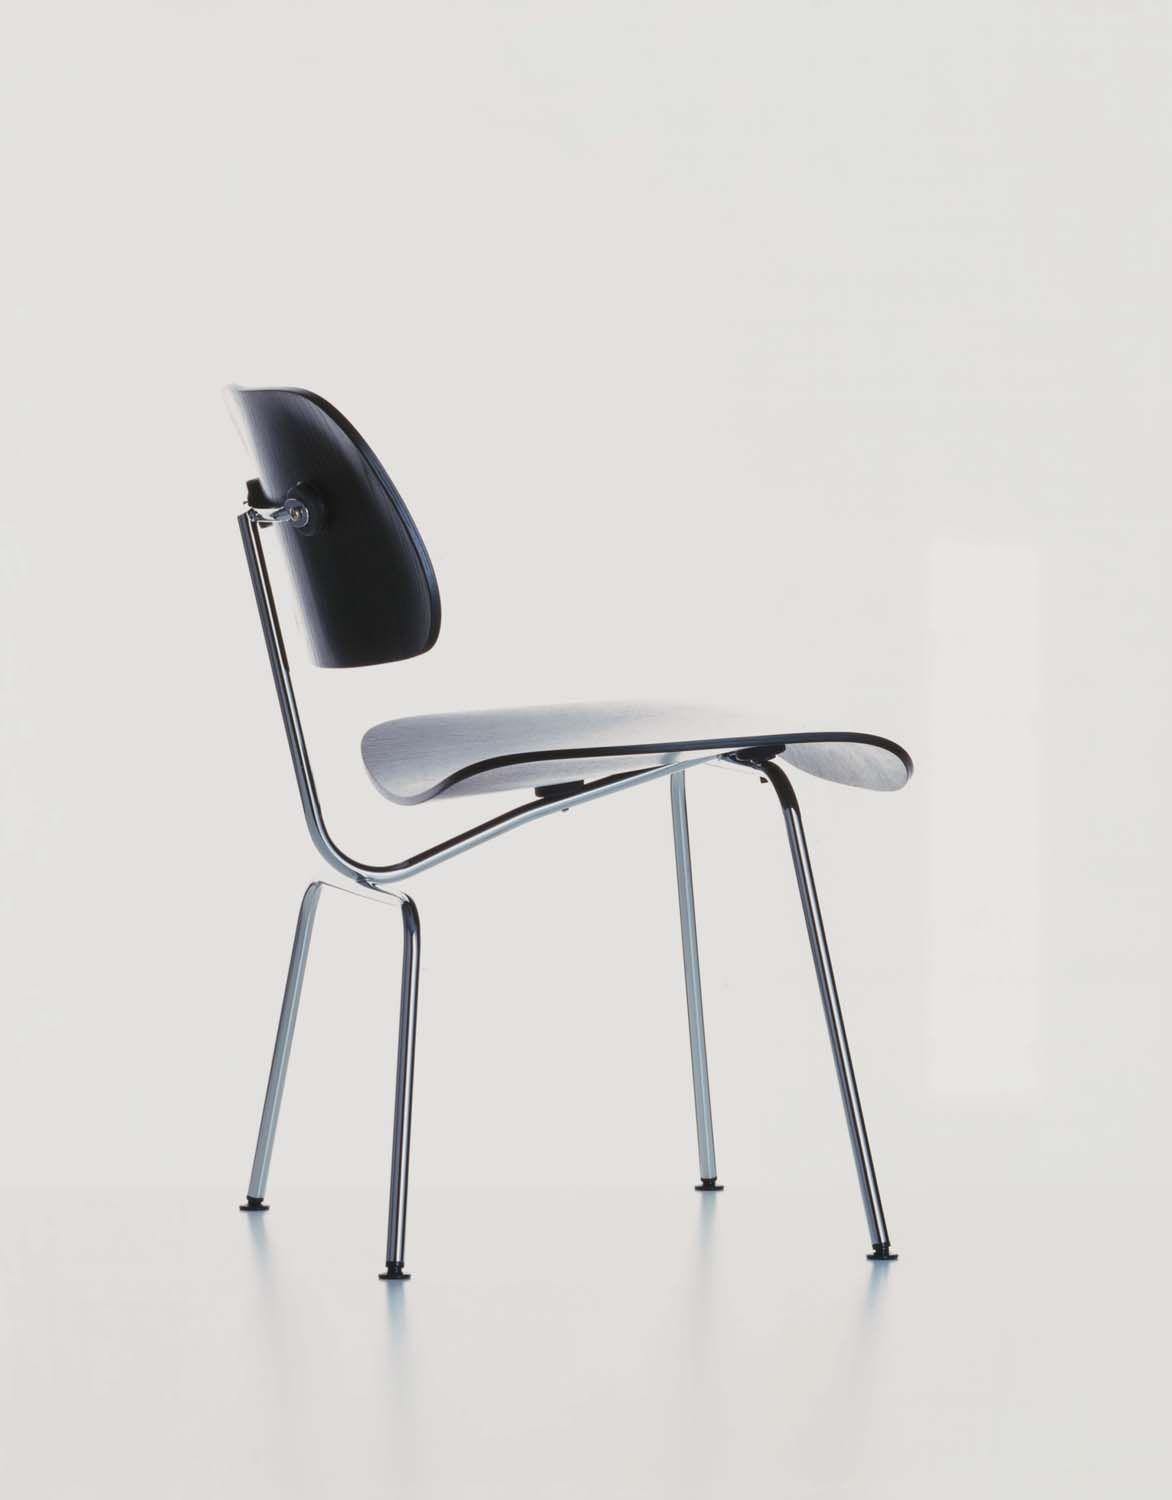 dcm chair by charles ray eames furniture pinterest st hle furniture und design. Black Bedroom Furniture Sets. Home Design Ideas